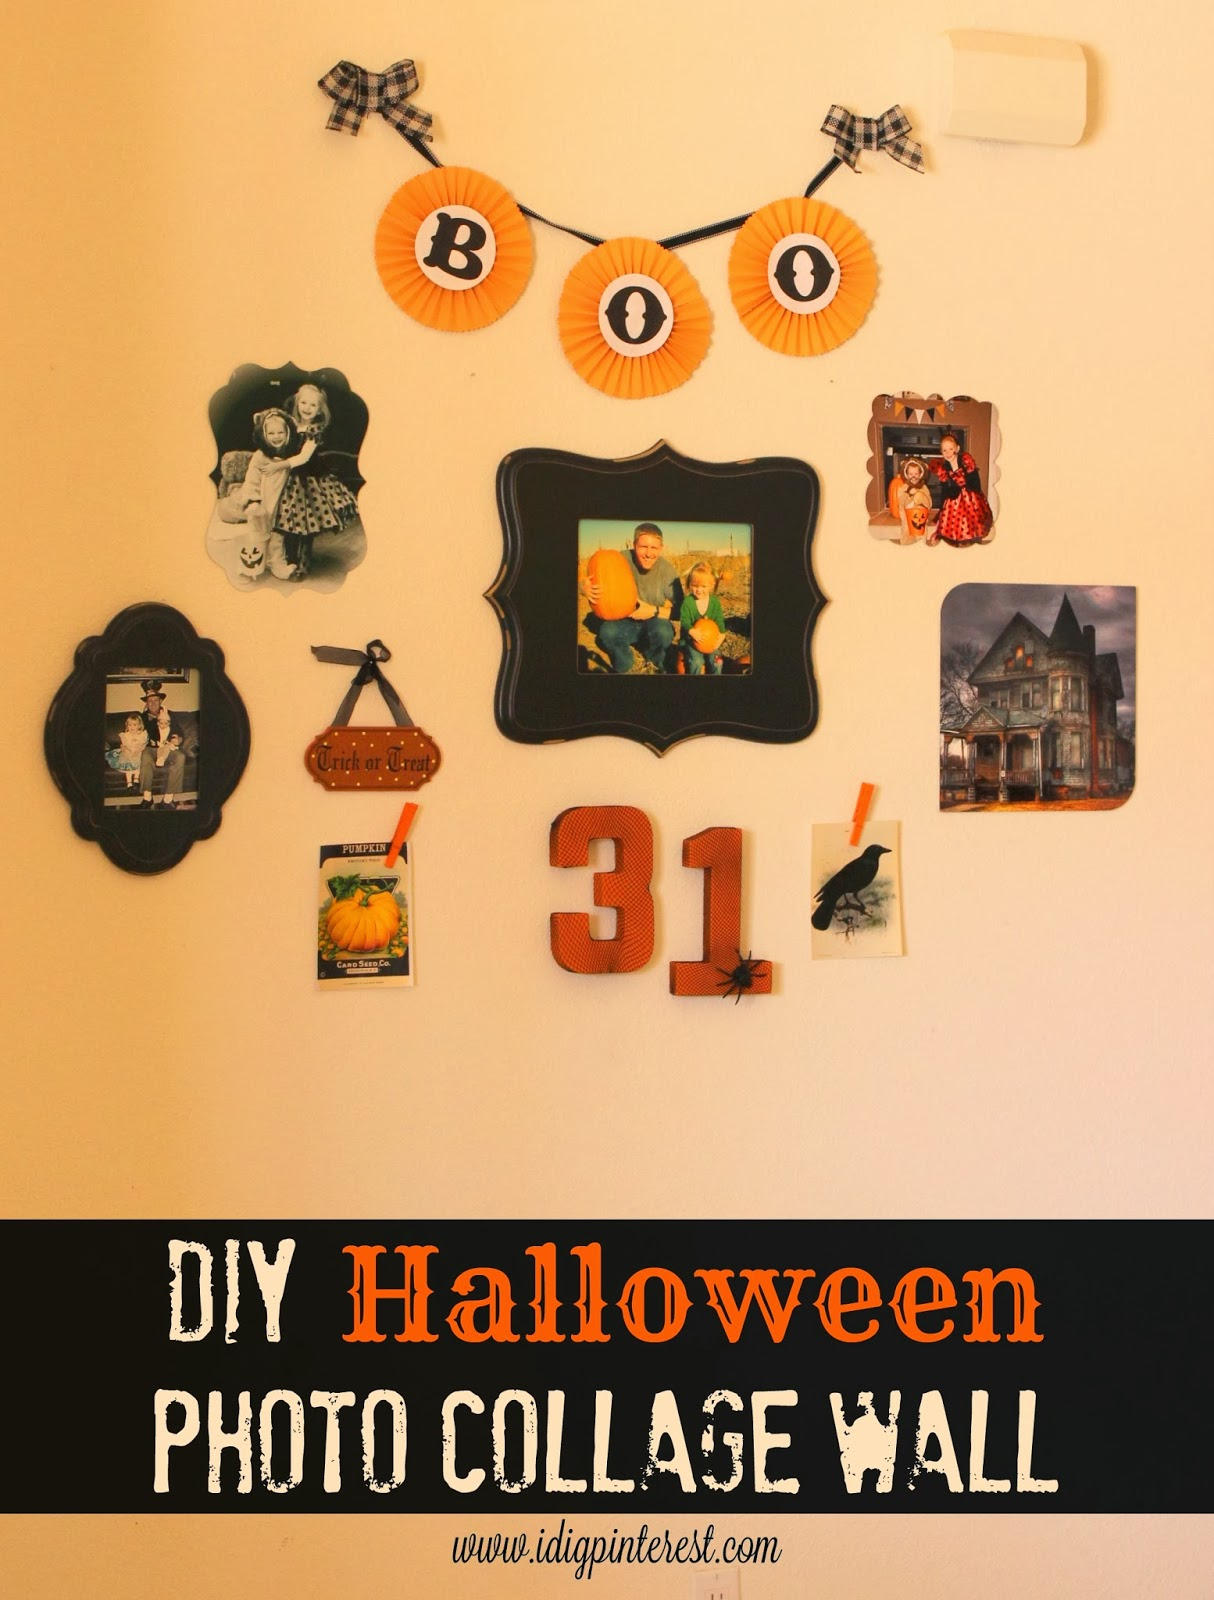 DIY Halloween Photo Collage Wall - I Dig Pinterest